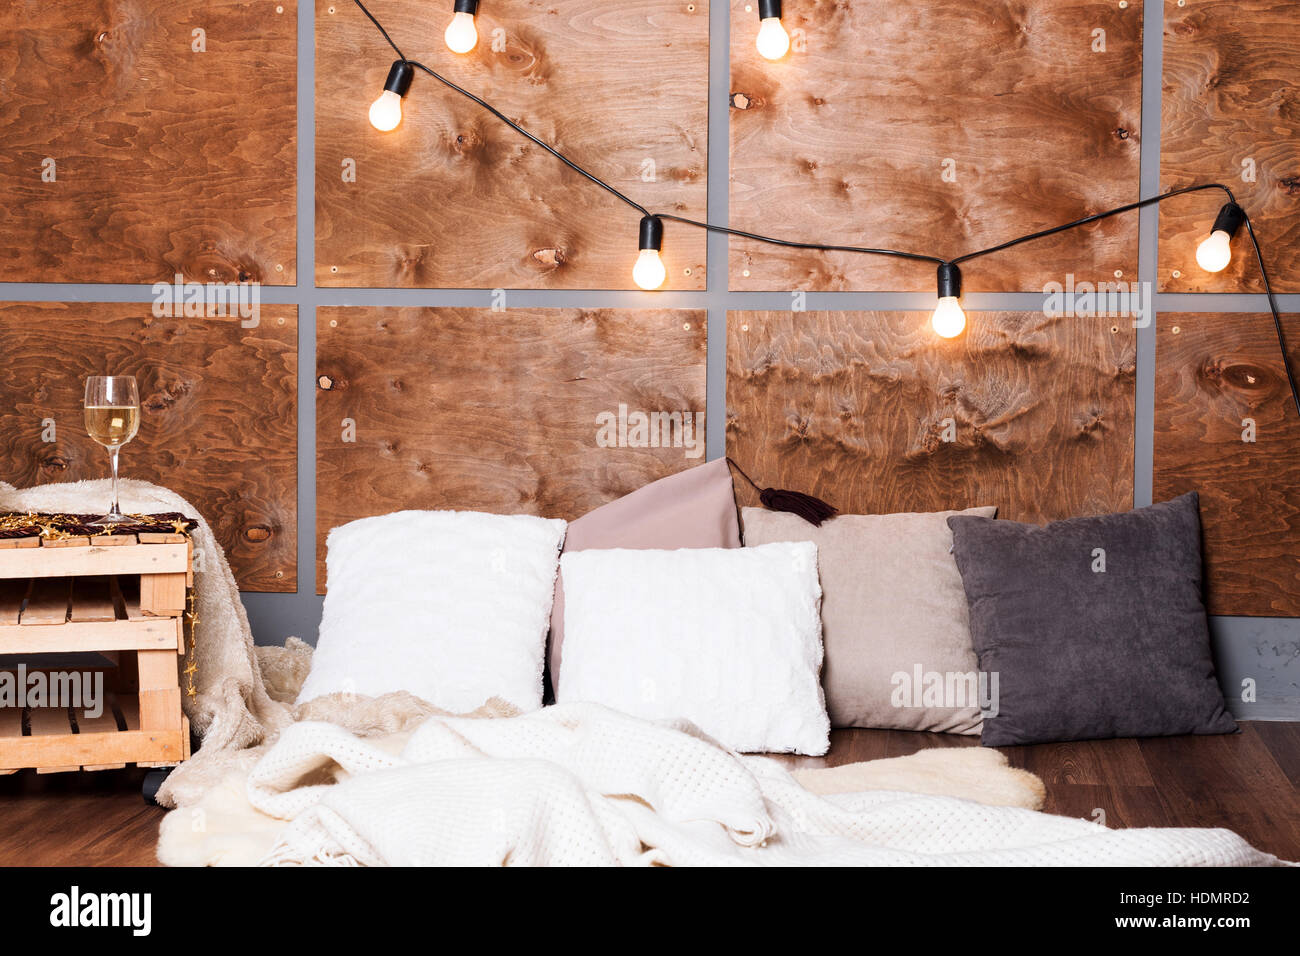 Glass of white wine in modern loft interior with light garland on wooden wall. Stock Photo